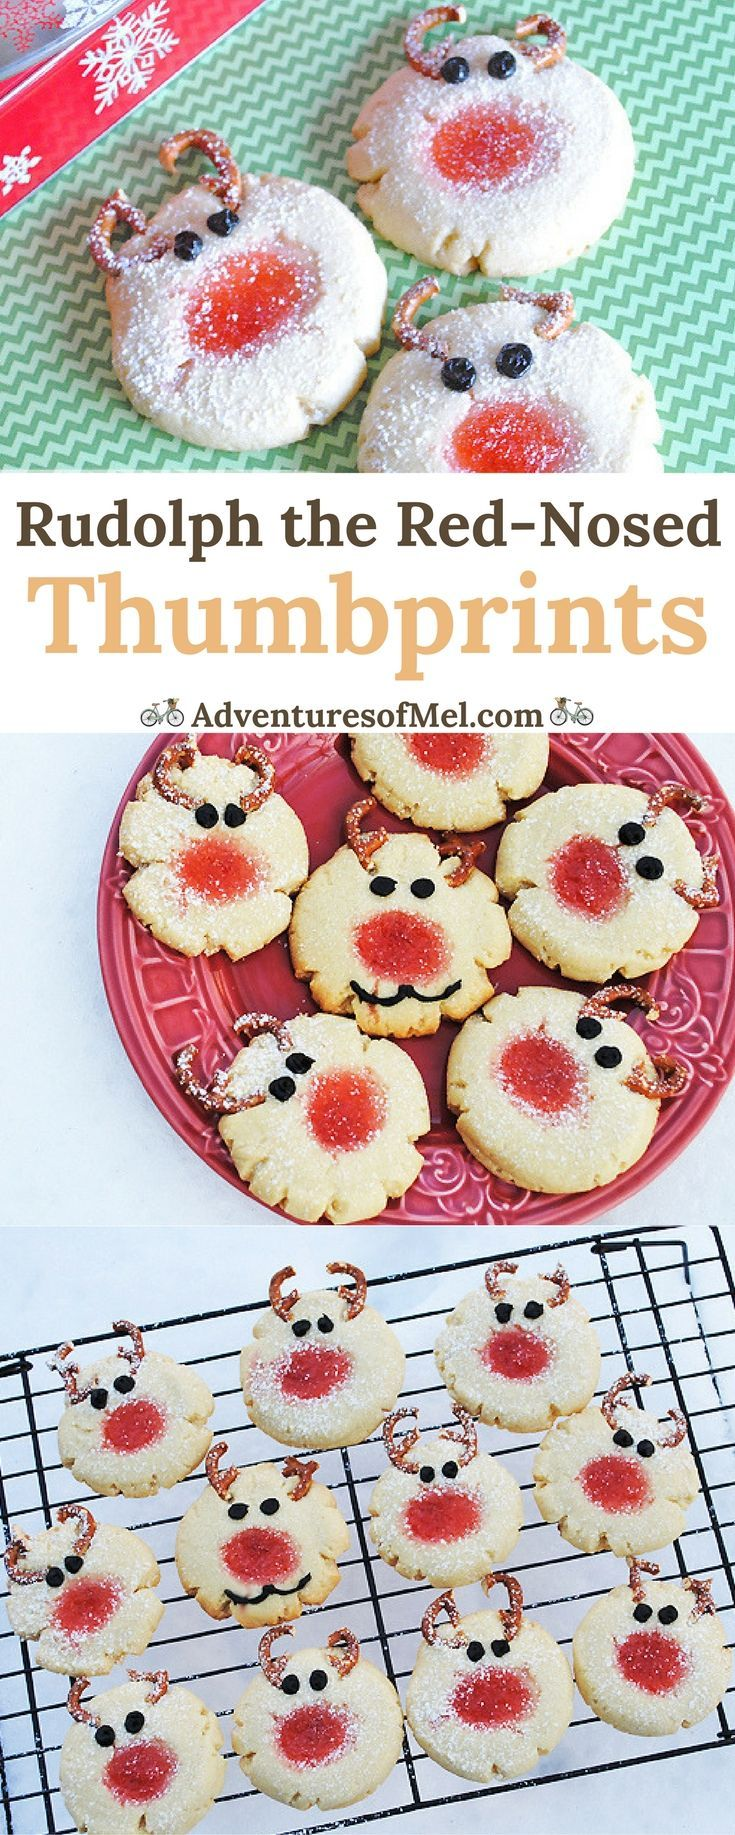 How to make the cutest Rudolph the Red-Nosed Thumbprints using jam and pretzels. Fun Christmas treat for a holiday party and dessert table.